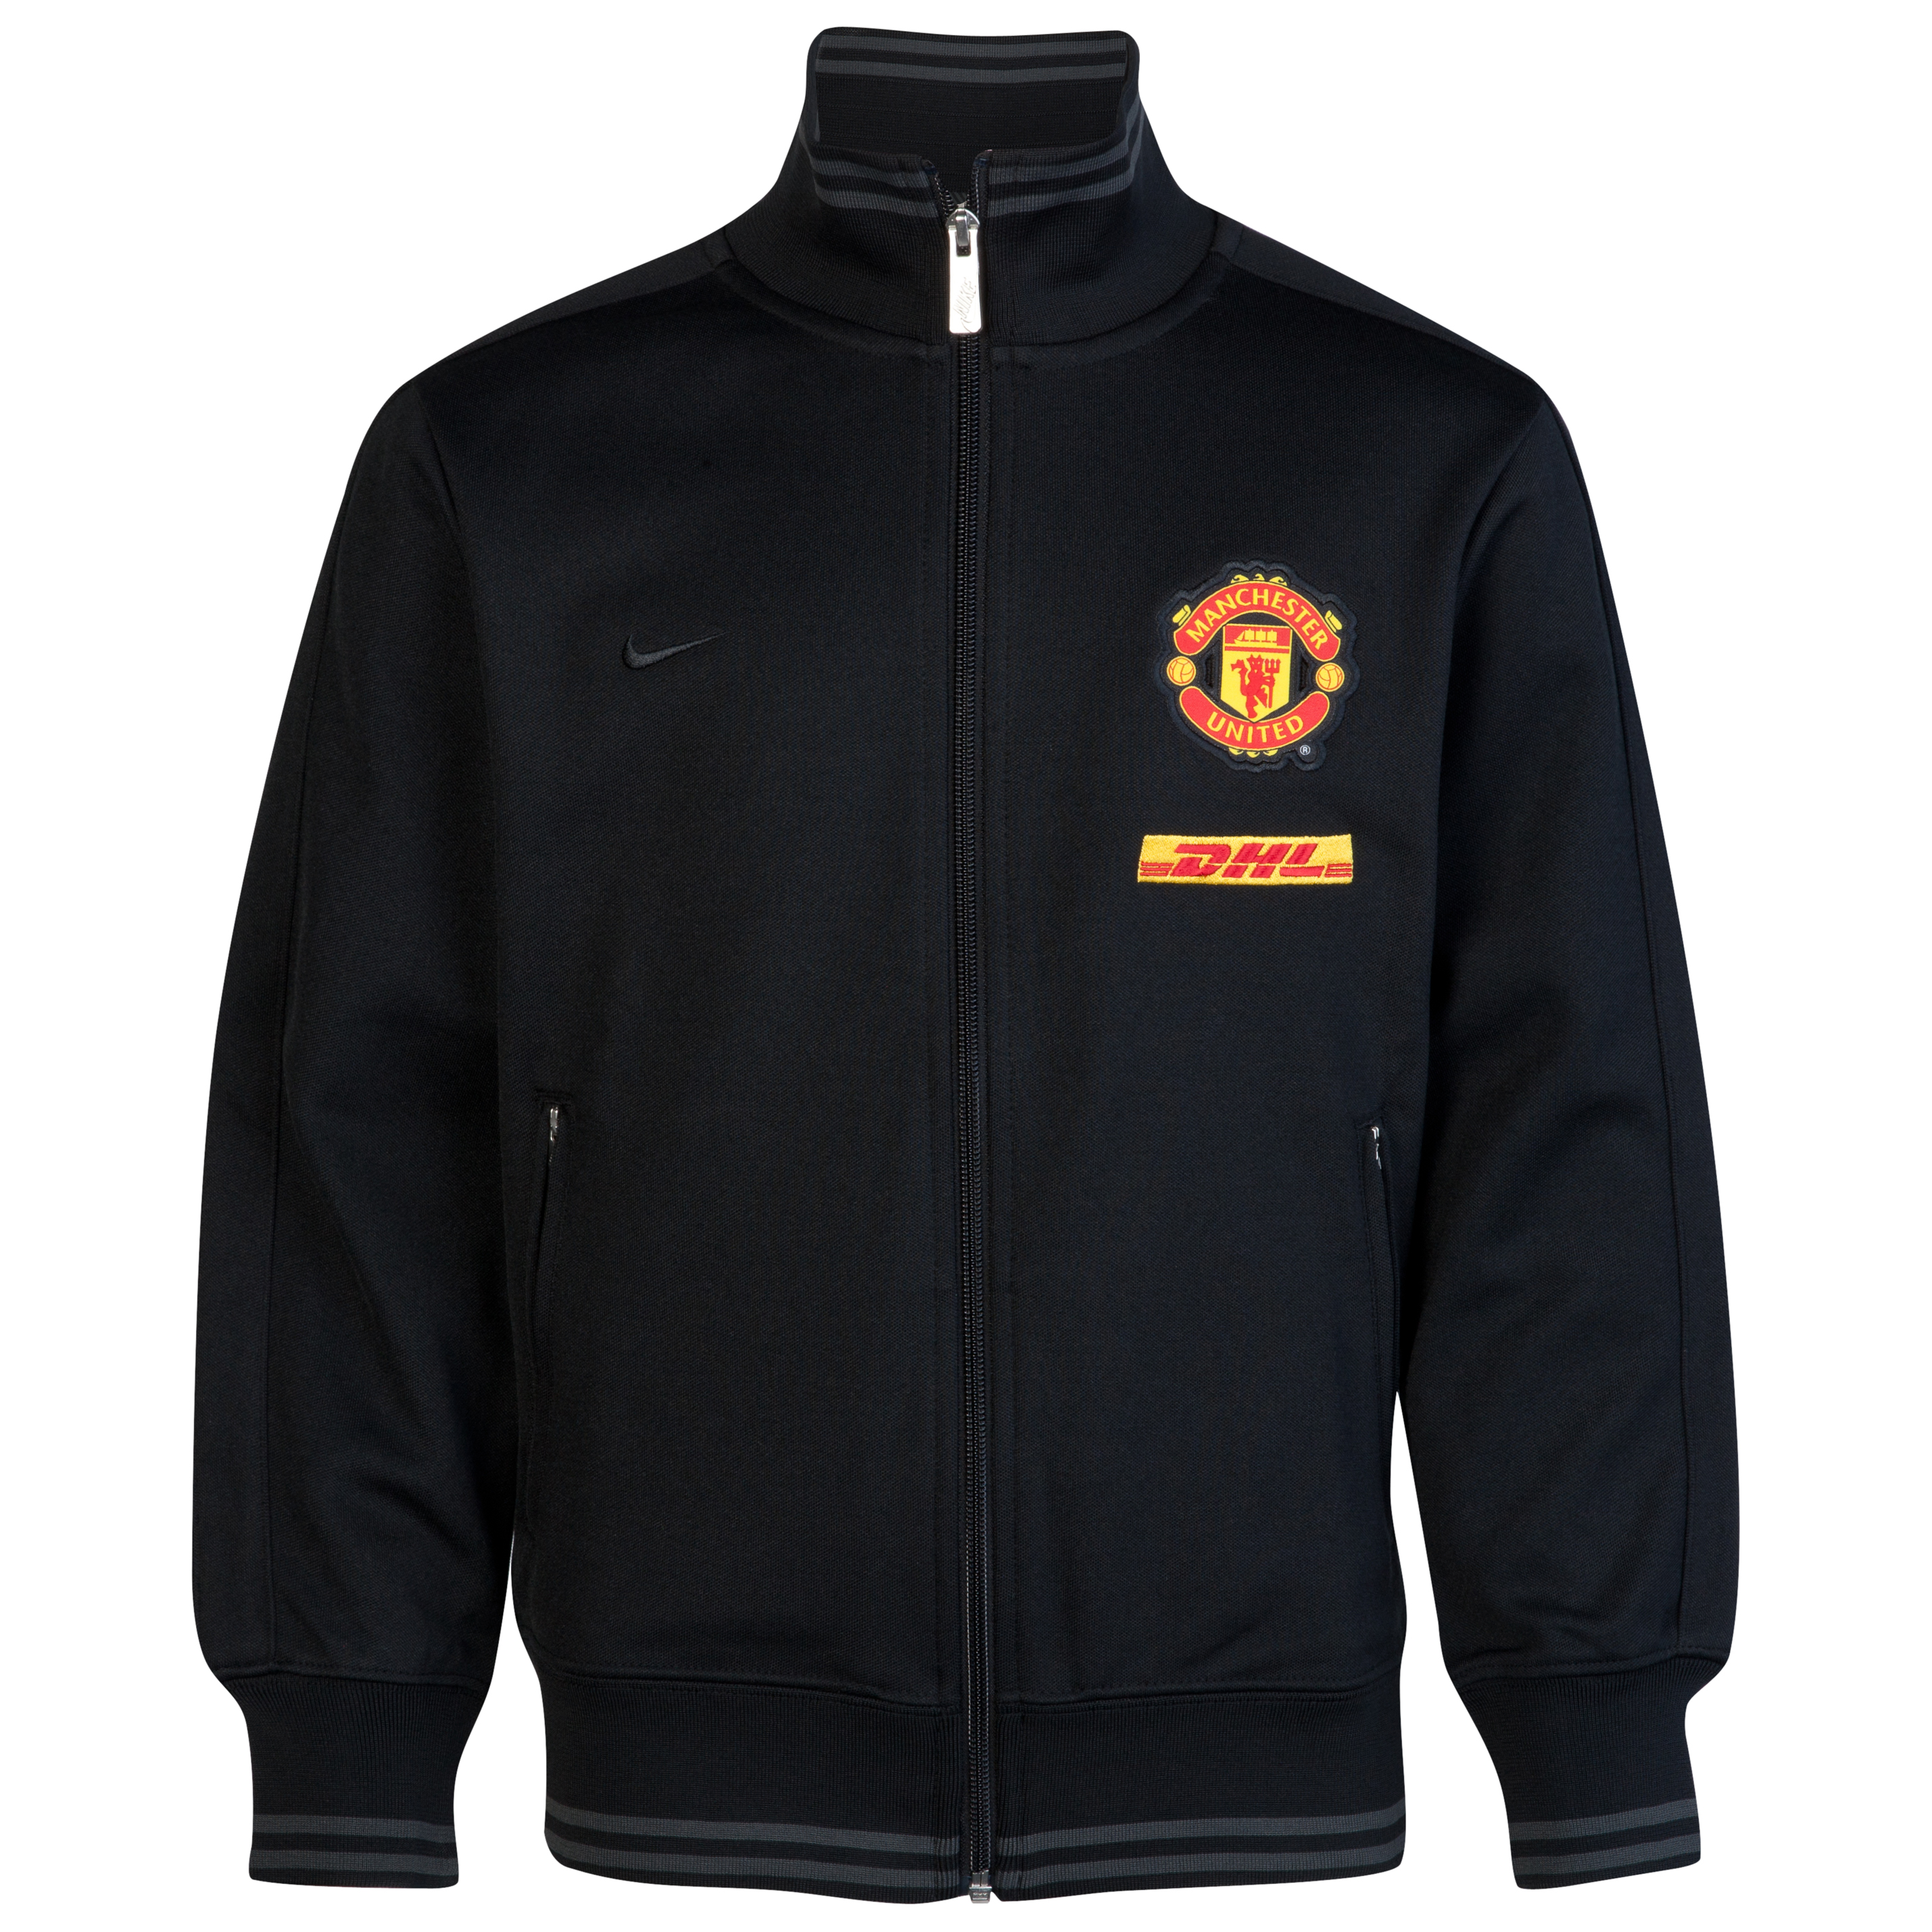 Manchester United Authentic N98 Jacket - DHL - Black/Anthracite/Black - Youths